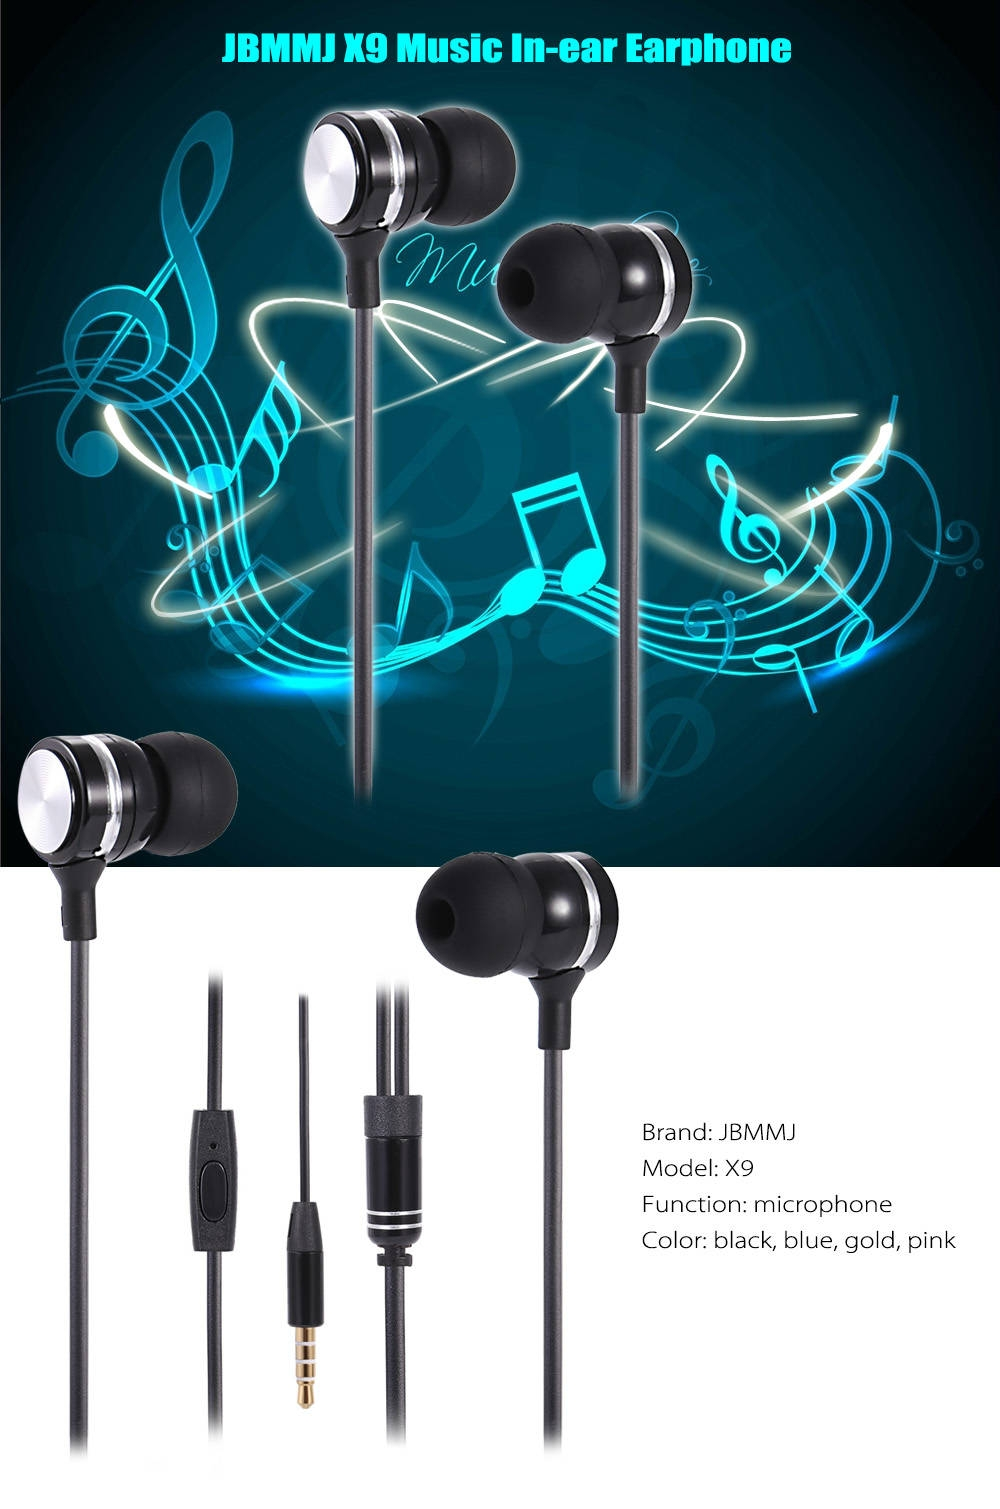 JBMMJ X9 Music In-ear Earphone with Mic Supporting Hands-free Calls